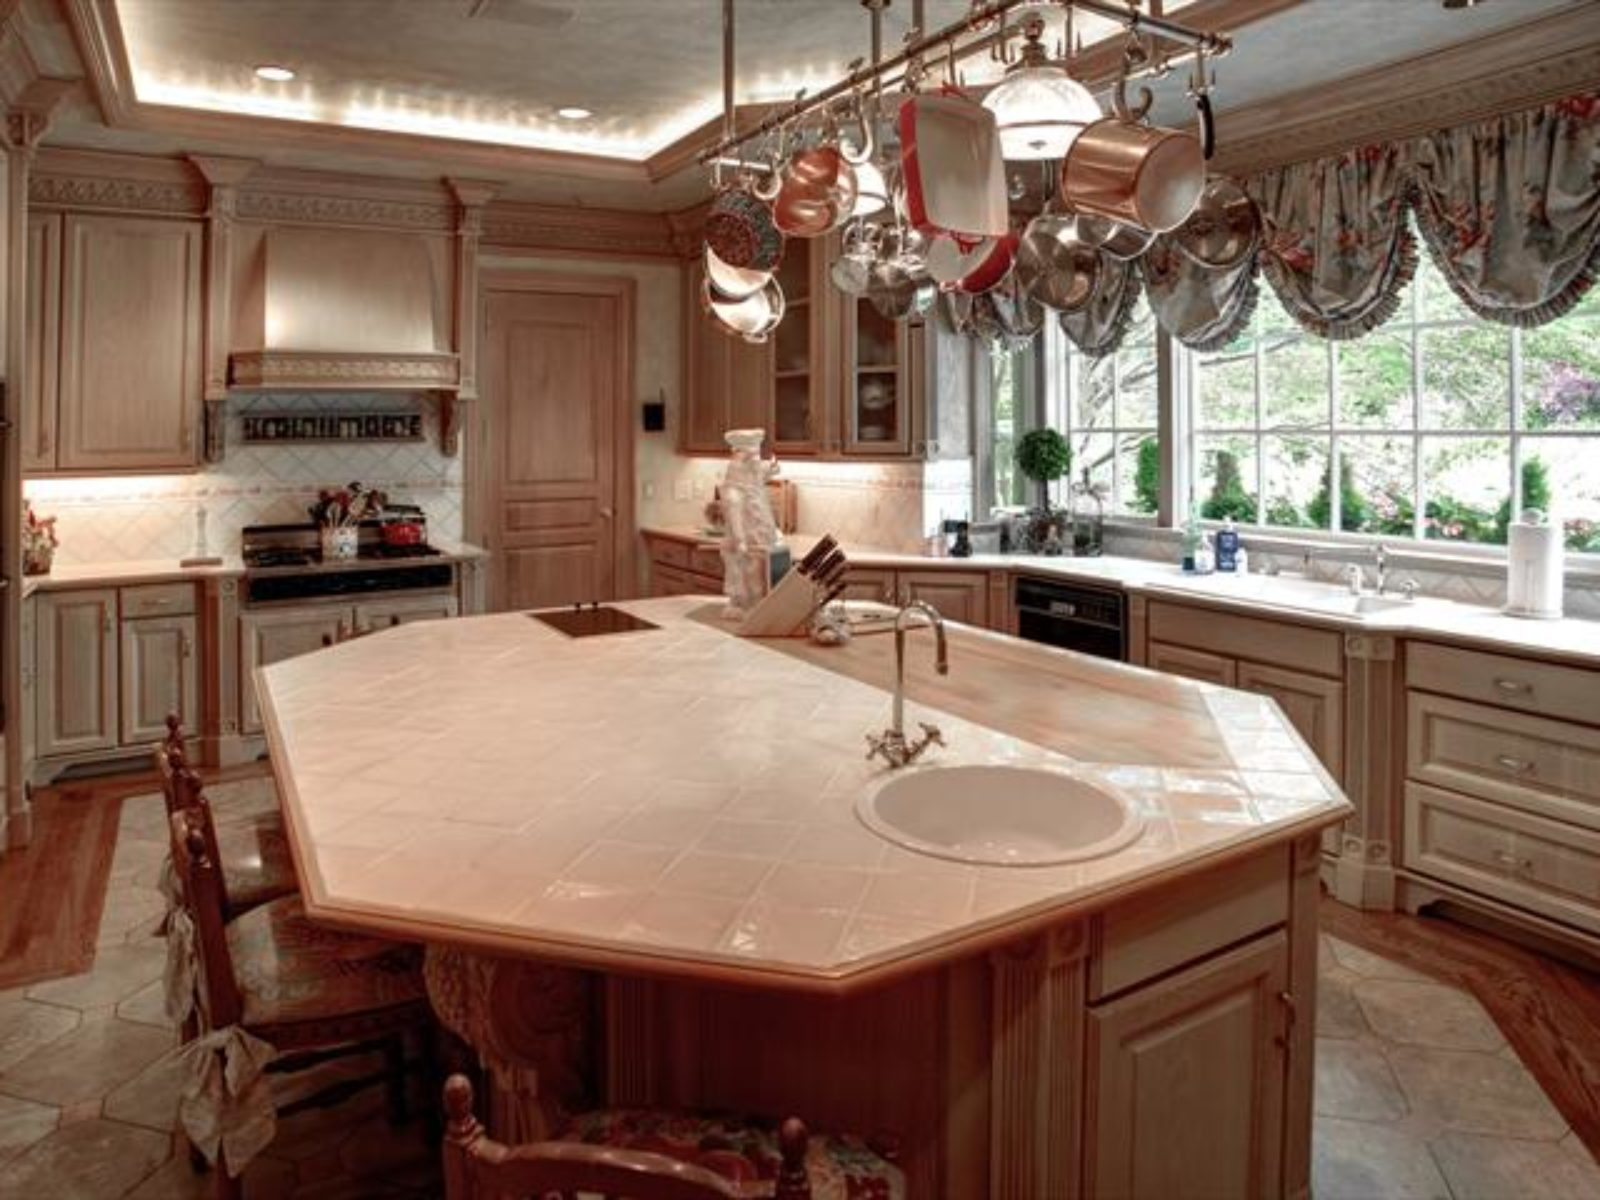 linwood_kitchen_002